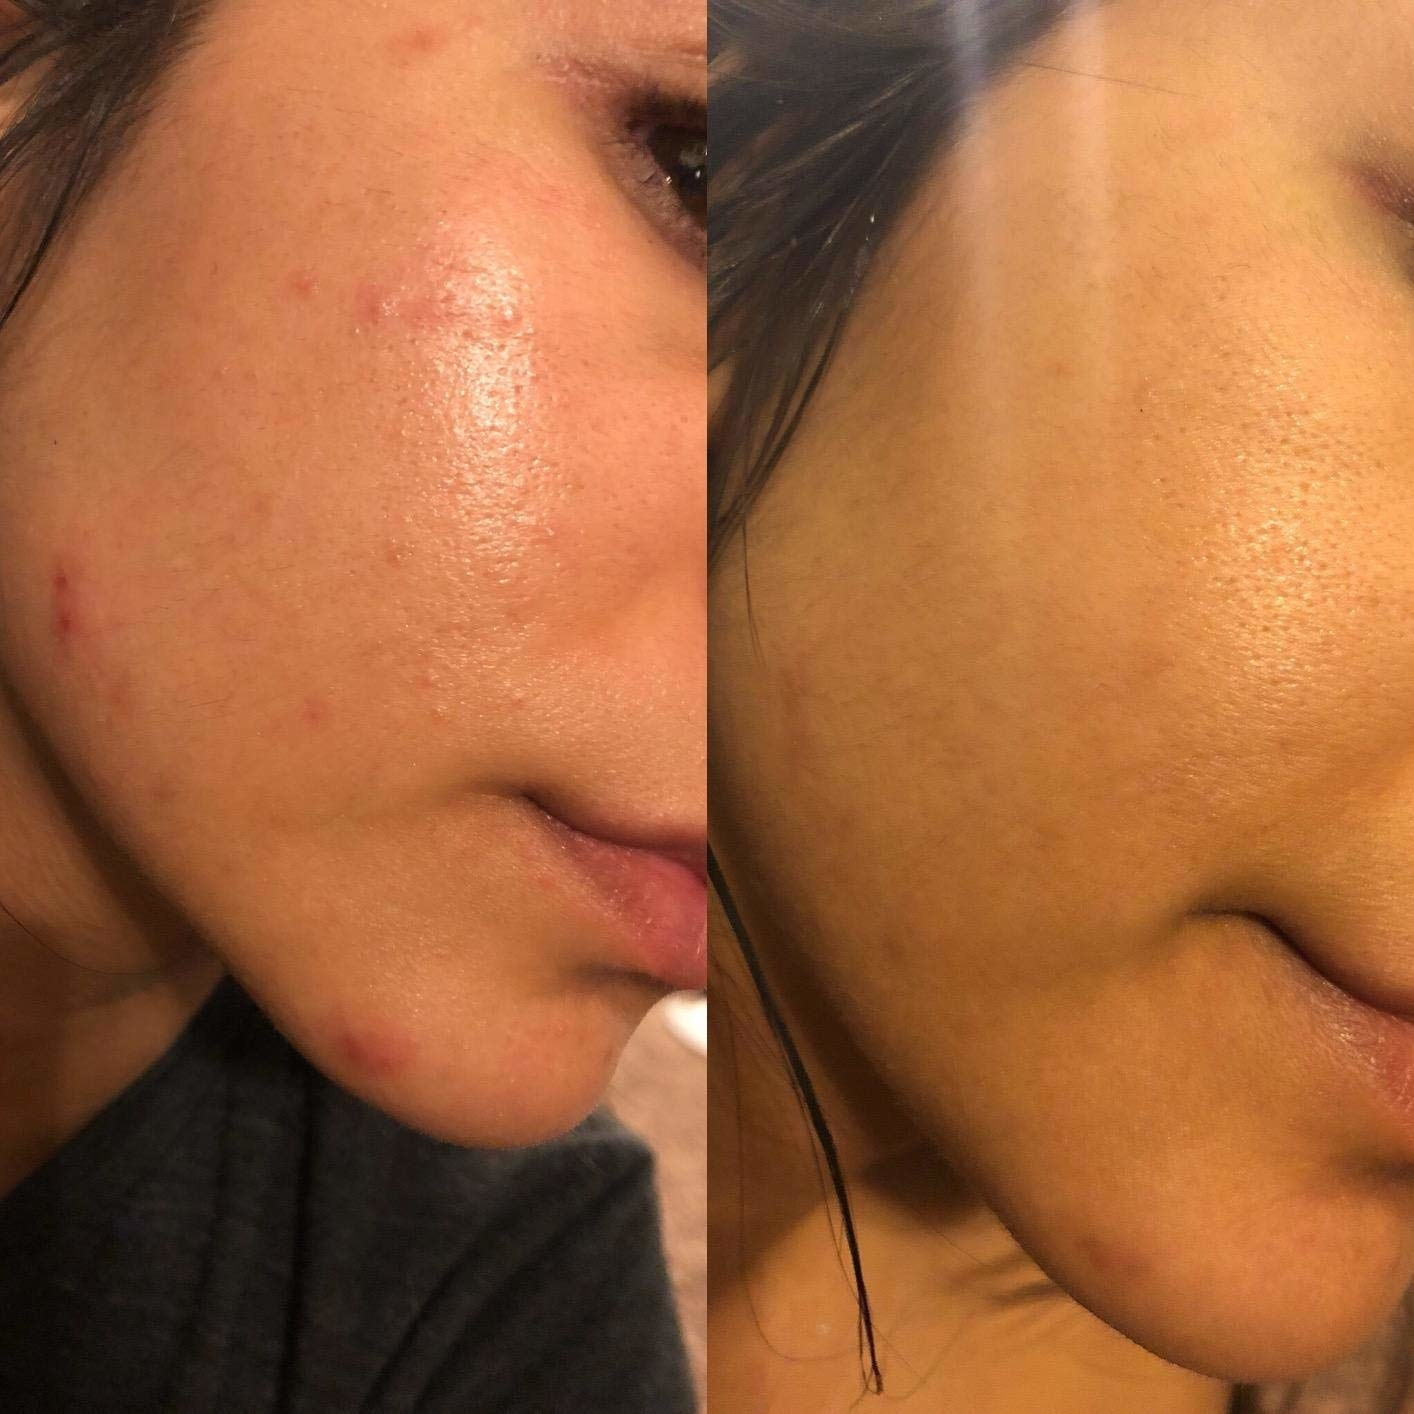 A reviewer before and after use, with reduced acne and redness